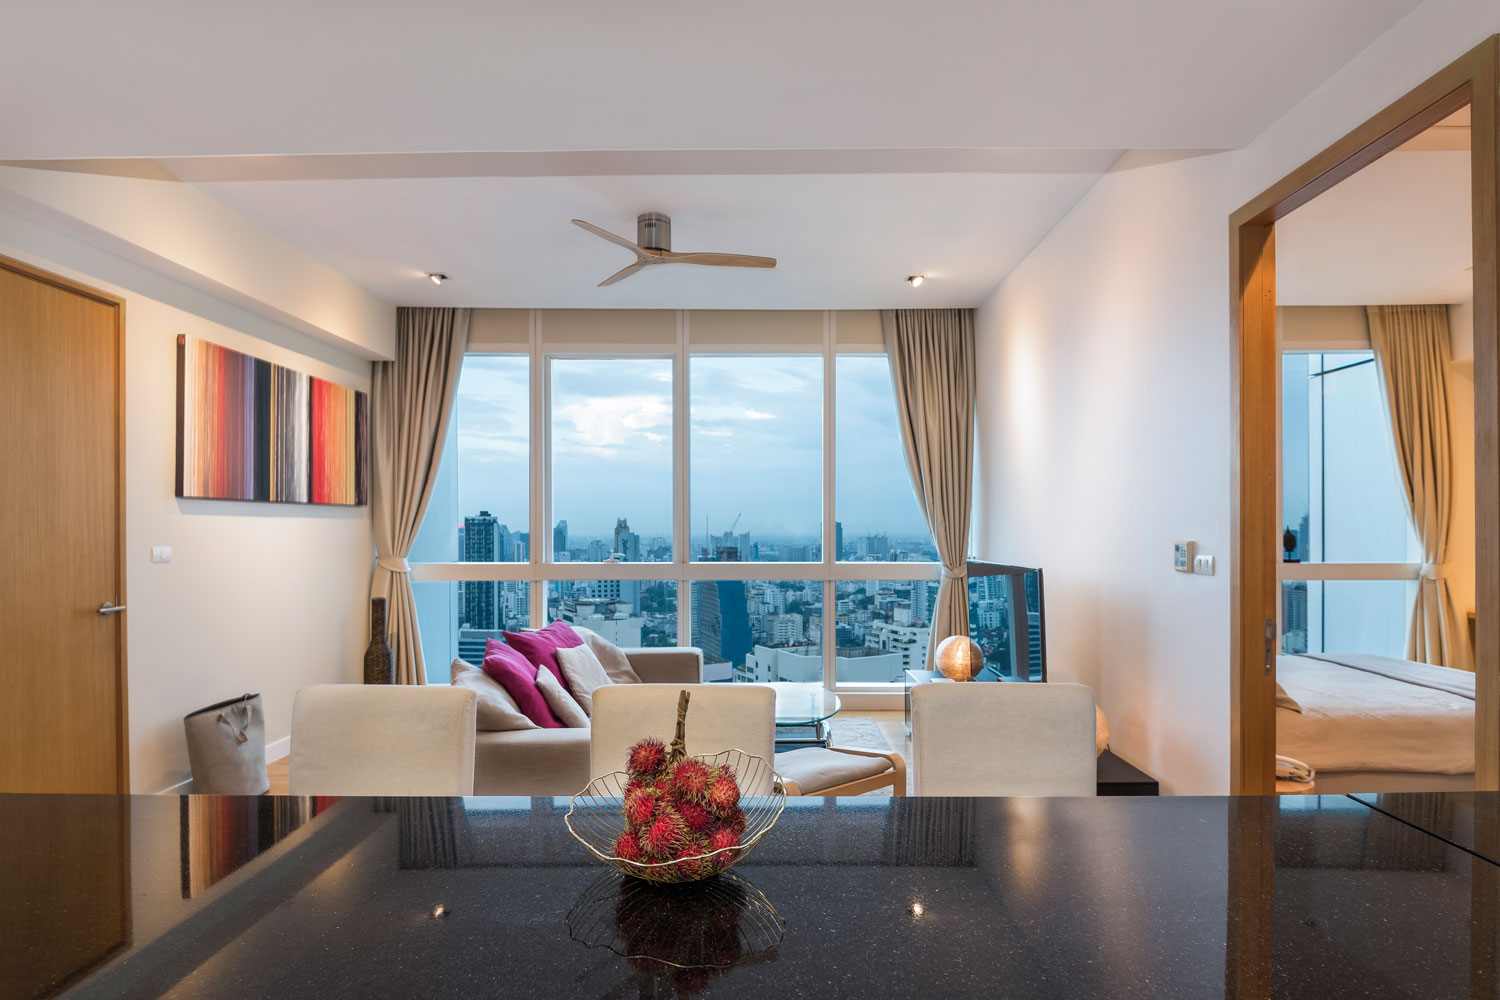 Interior photography of an apartment with skyline view in Bangkok, Thailand. Captured by a commercial real estate photographer